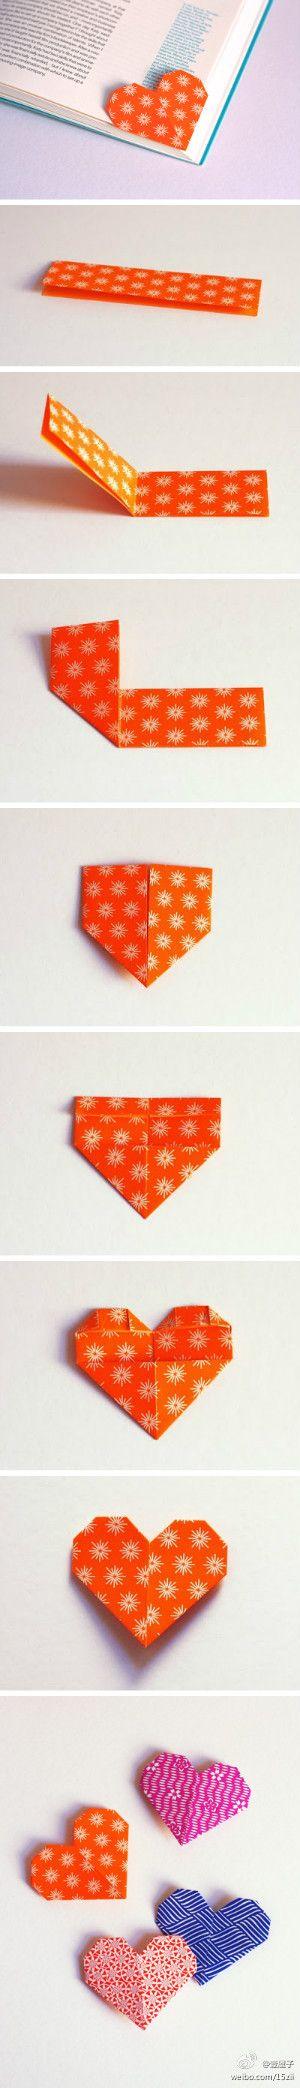 Heart Bookmark, so cute and easy